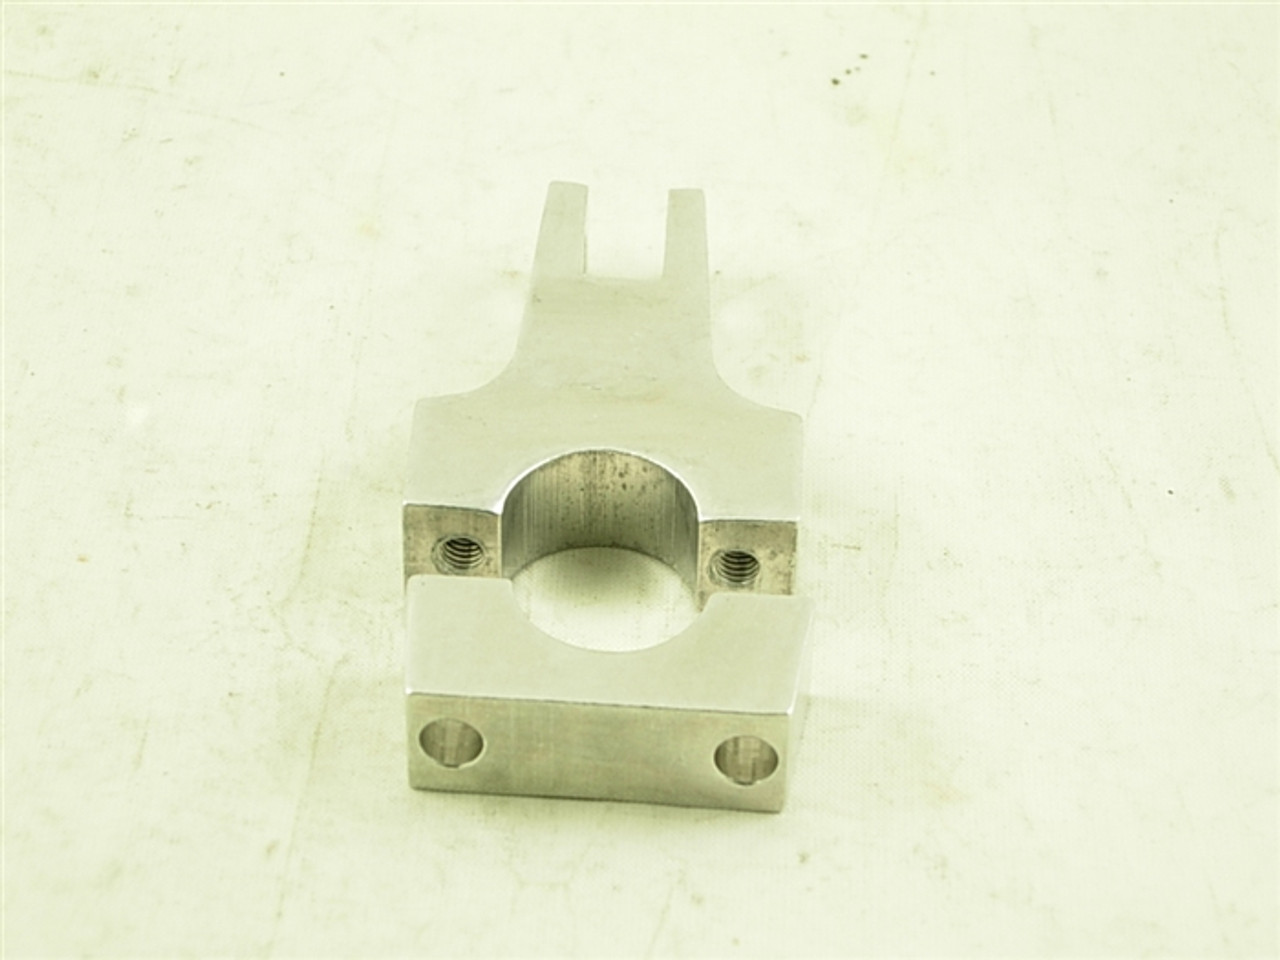 HANDLE BAR CLAMP 11162-A65-10